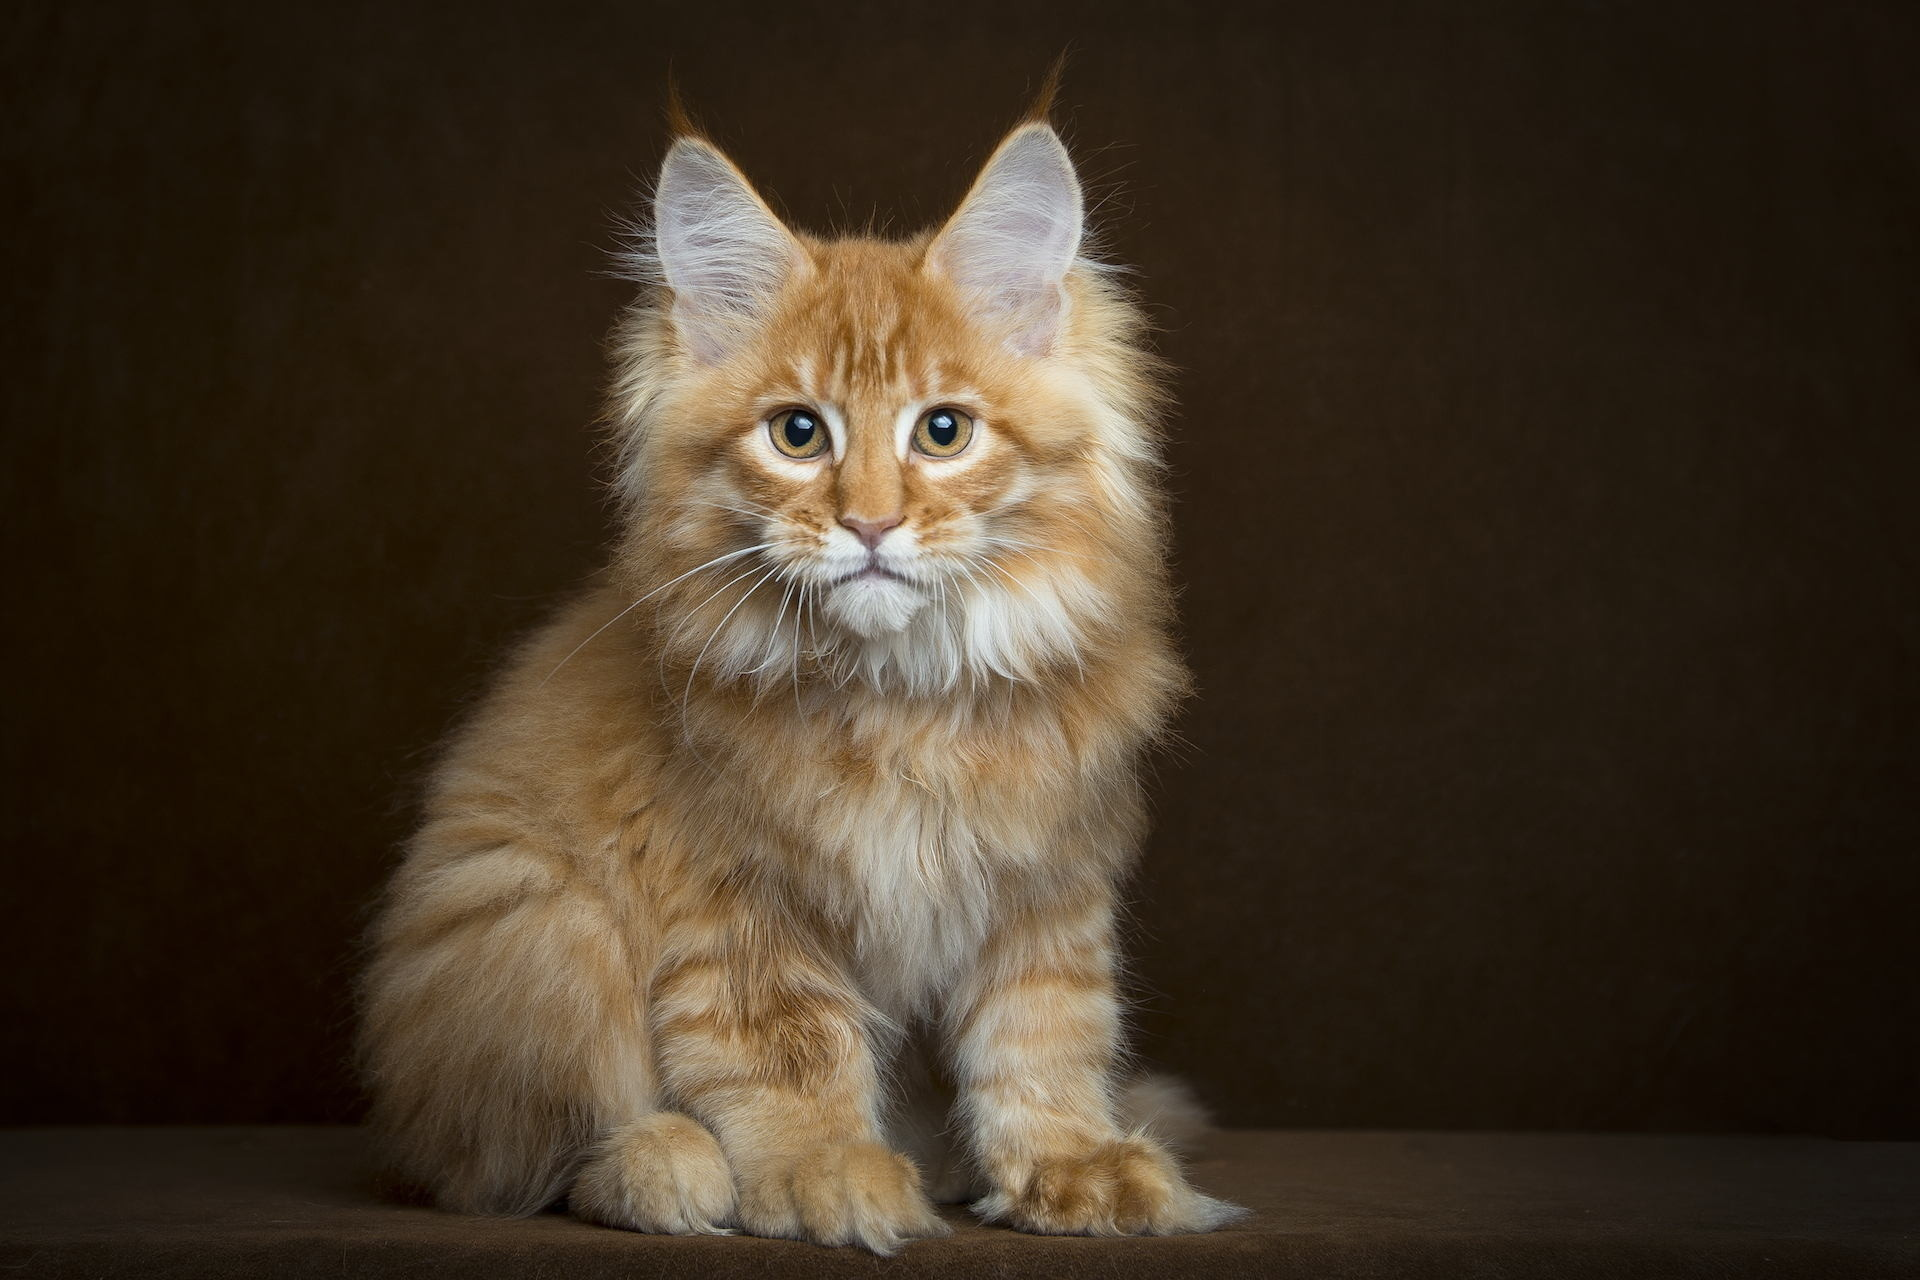 Res: 1920x1280, Maine Coon Kitten Fluffy View - Free Stock Photos, Images, HD Wallpaper